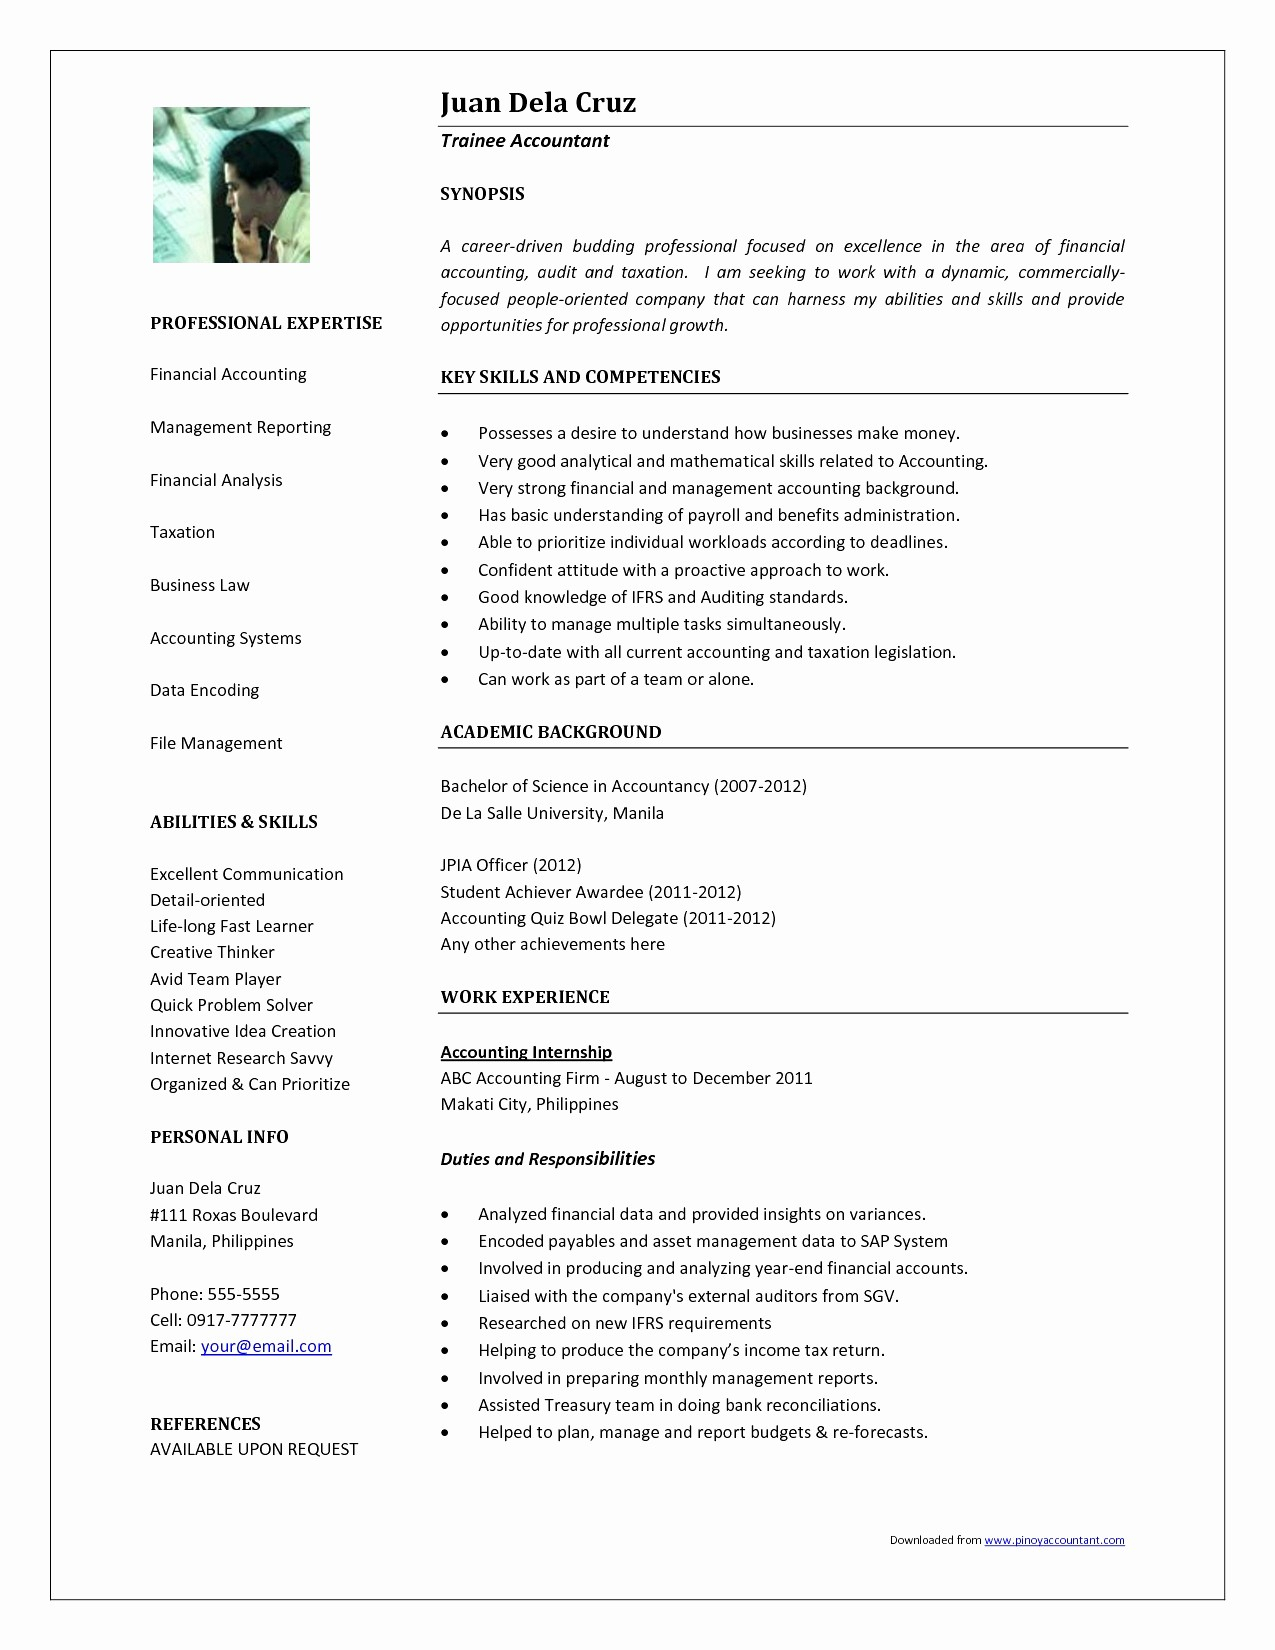 Company Letter Template - New Business Letter Template